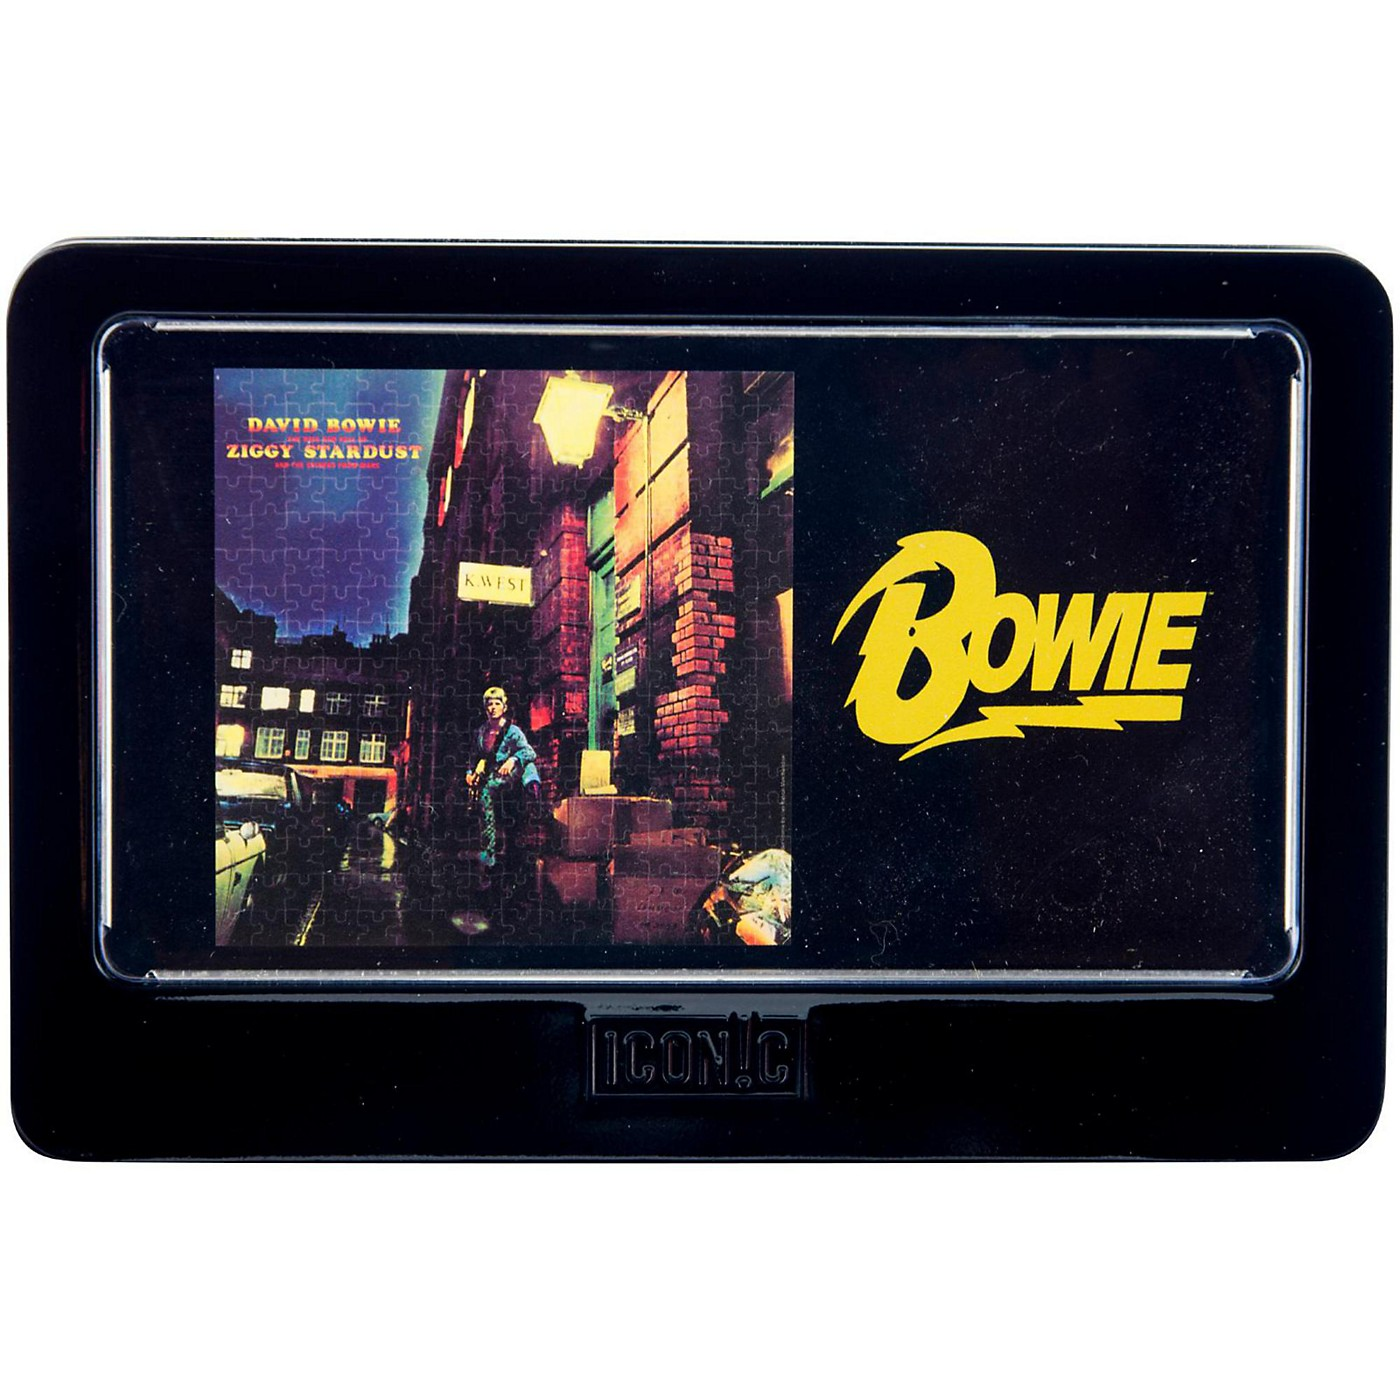 Iconic Concepts David Bowie Ziggy Stardust 3D Lenticular Jigsaw Puzzle in Tin Gift Box thumbnail